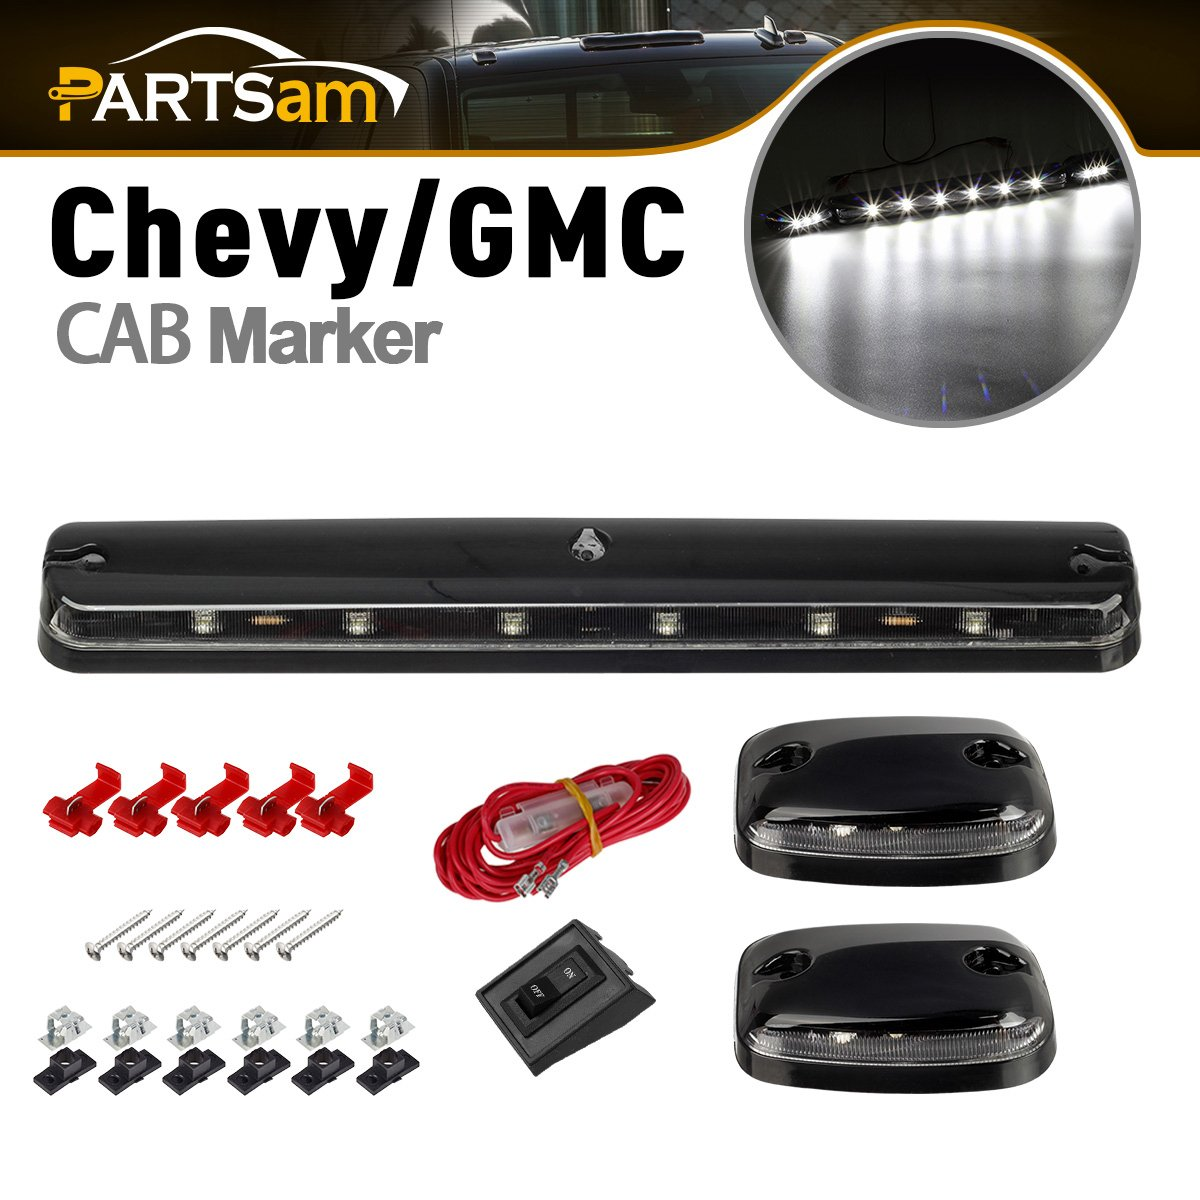 Partsam 3PCS Clear Lens Cab Roof Marker Lights 12LED Amber Top Clearance Assembly Light Replacement For 2007 2008 2009 2010 2011 2012 2013 2014 Chevy Silverado GMC Sierra 1500 2500 3500 2500HD 3500HD